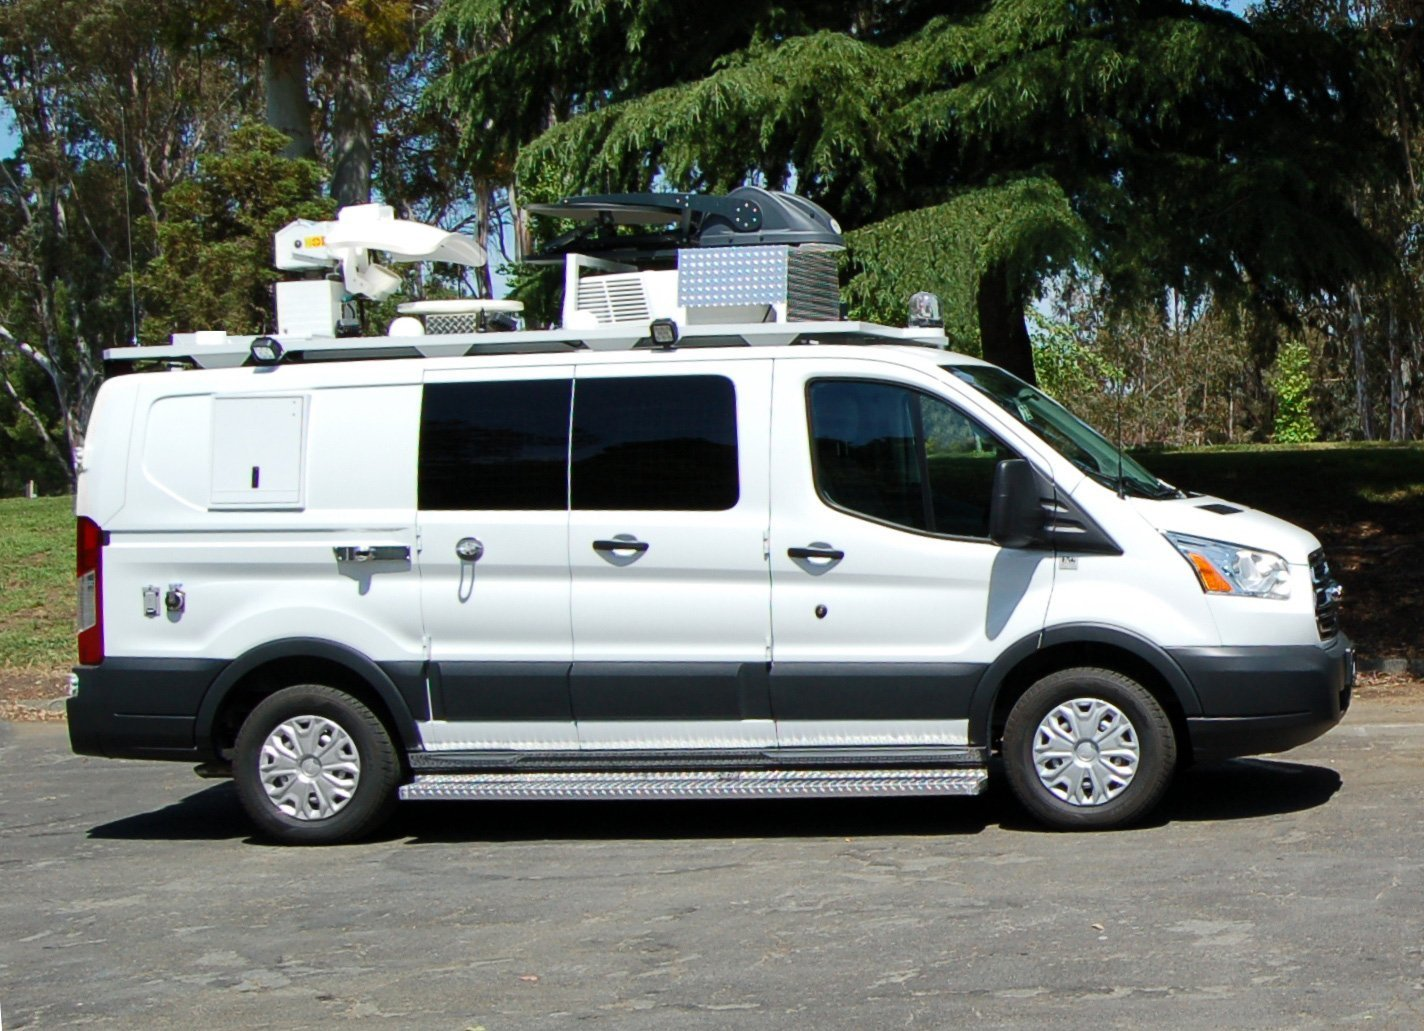 KGO Broadcast News Van